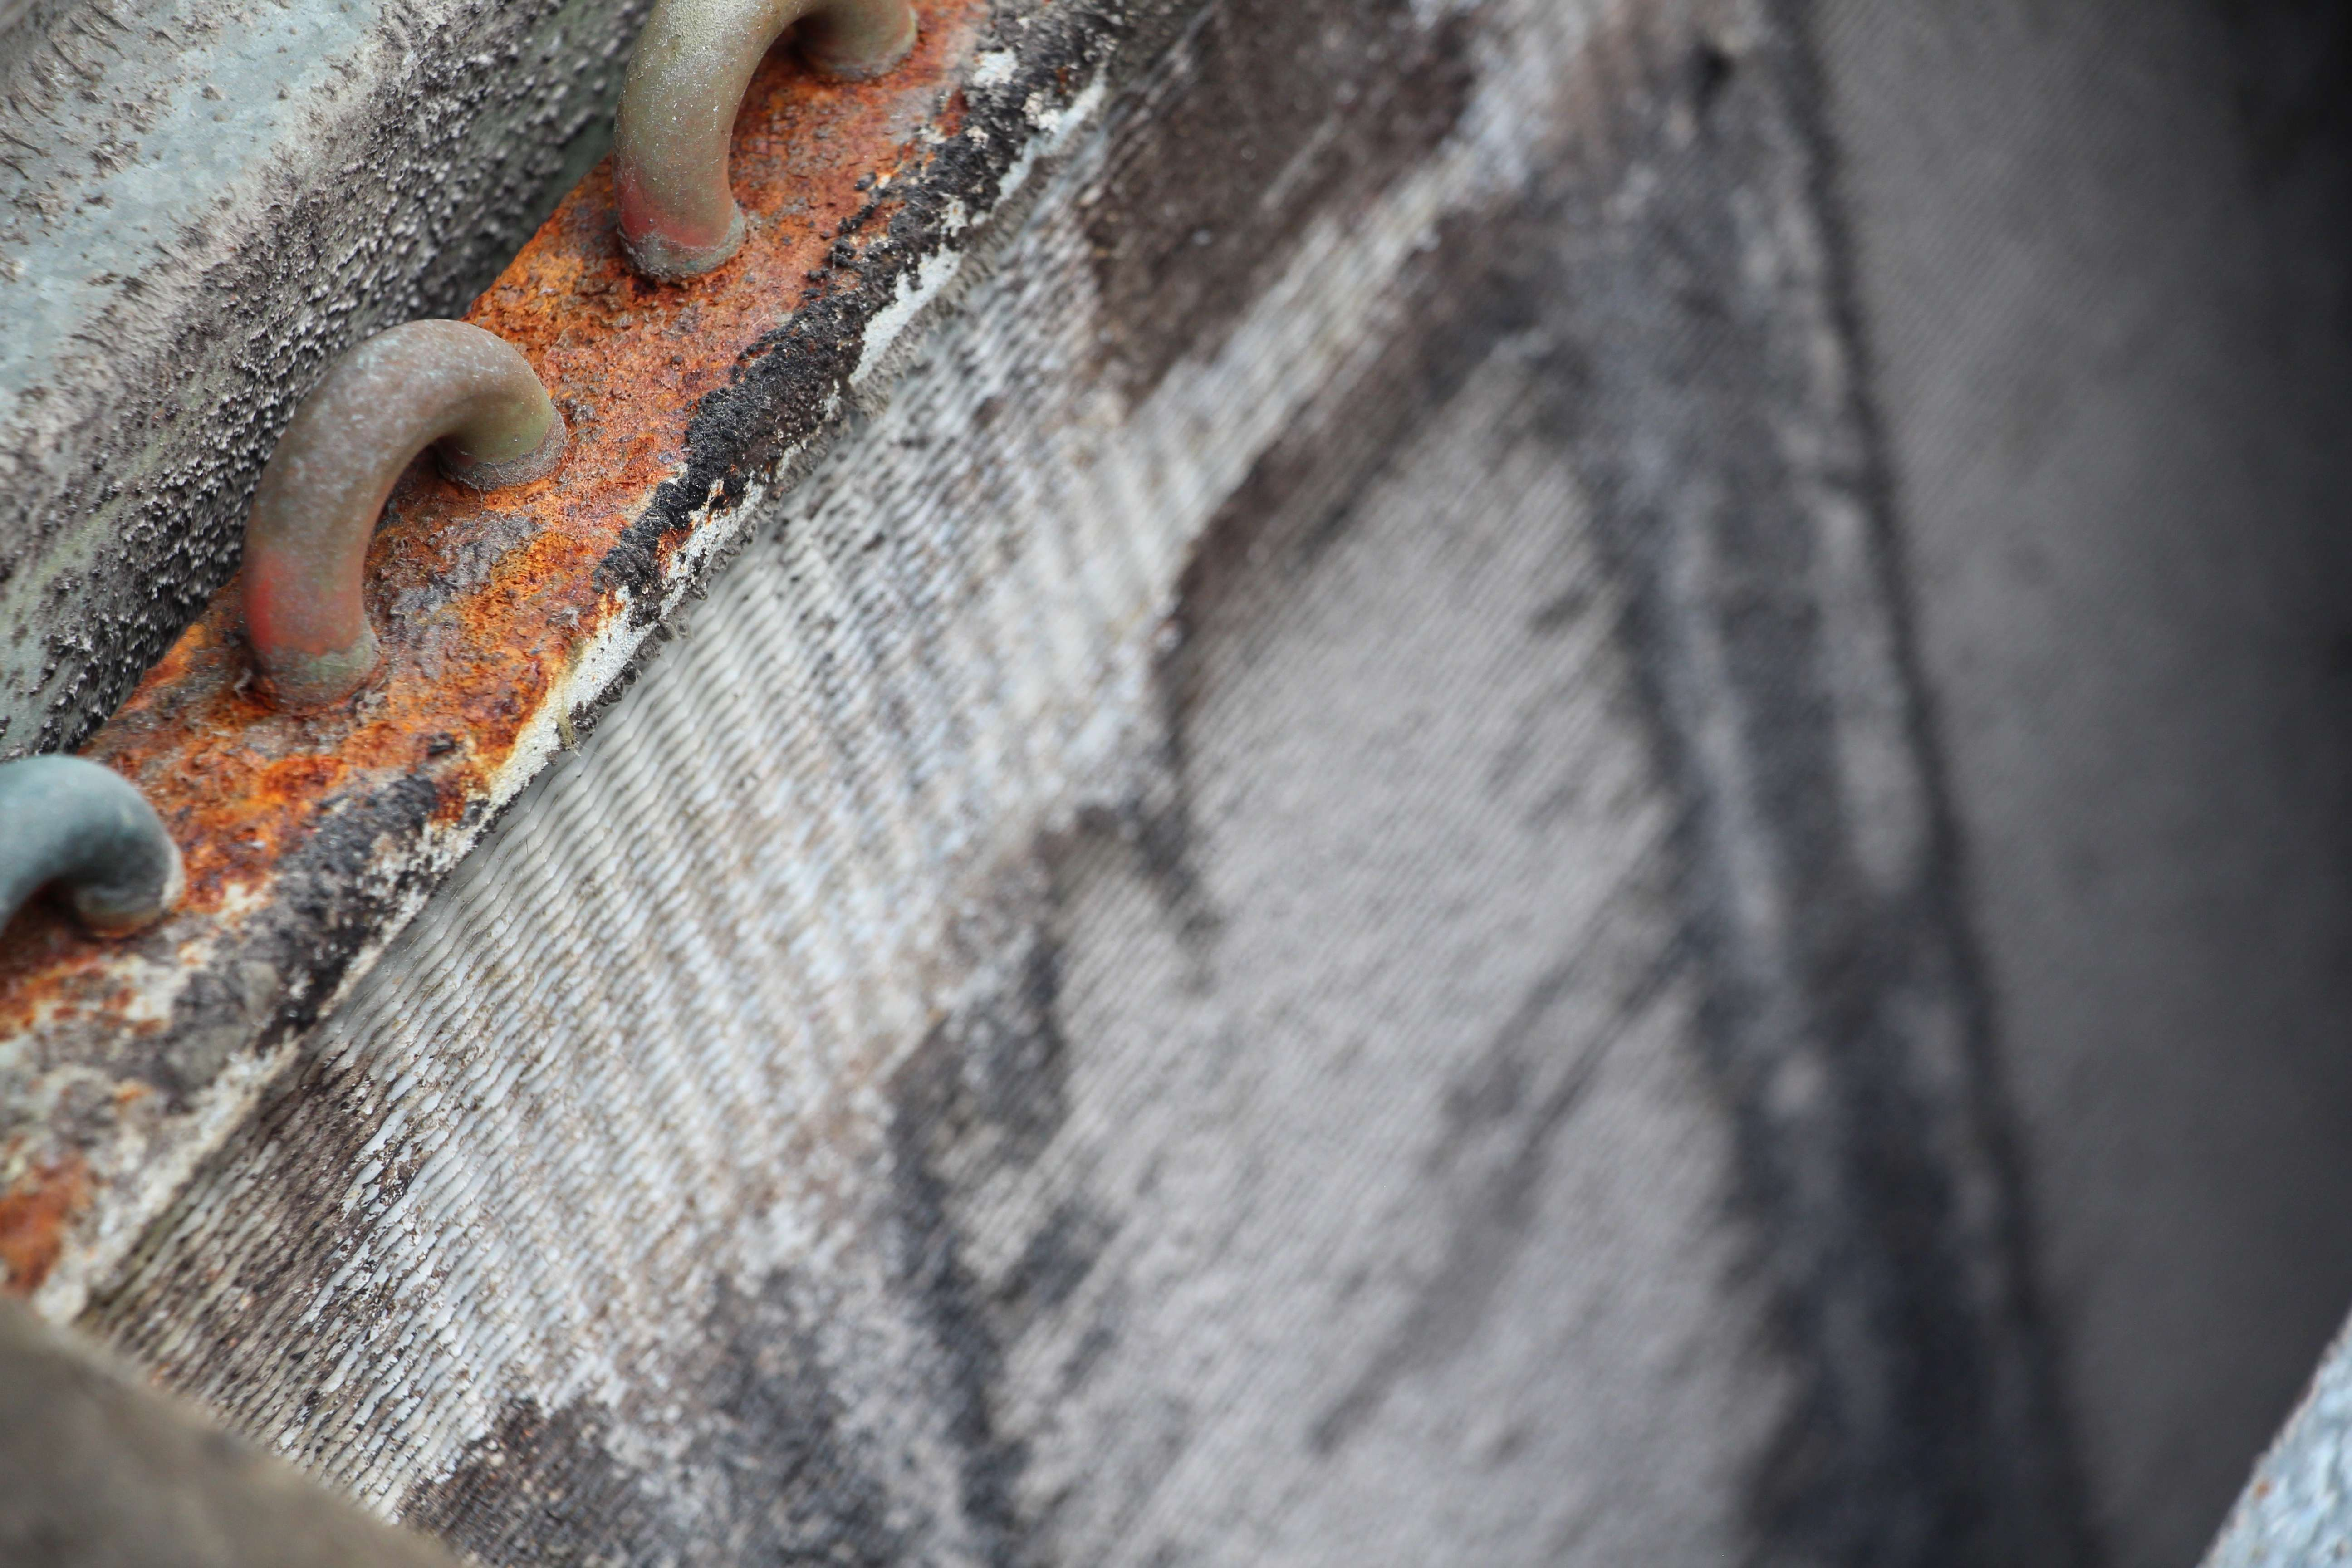 Rust, mold, and dirt on evaporator coil